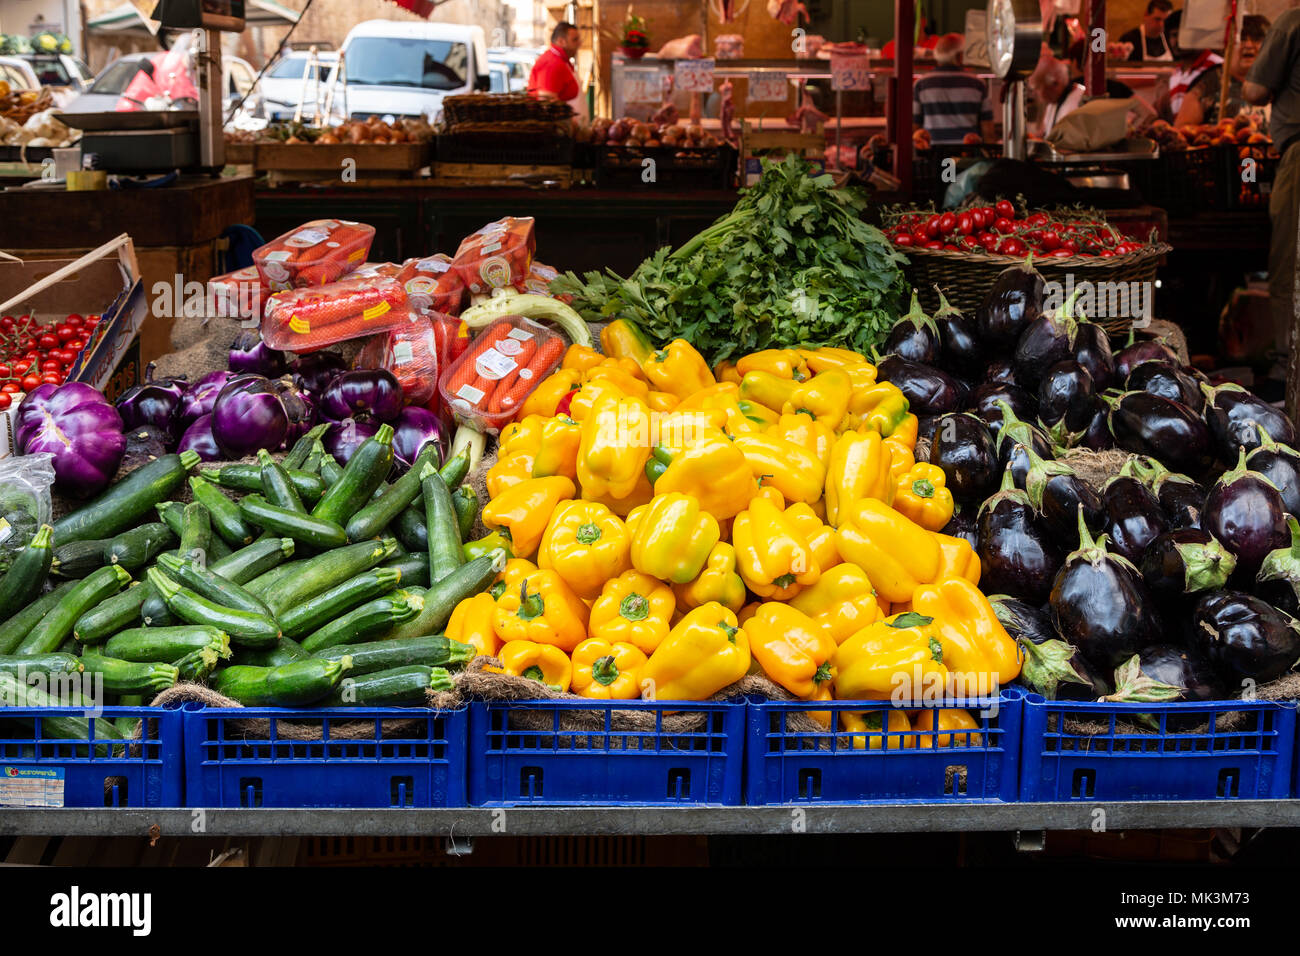 Fruits and vegetables in the streets of famous Ballarò market in Palermo, Sicily - Stock Image